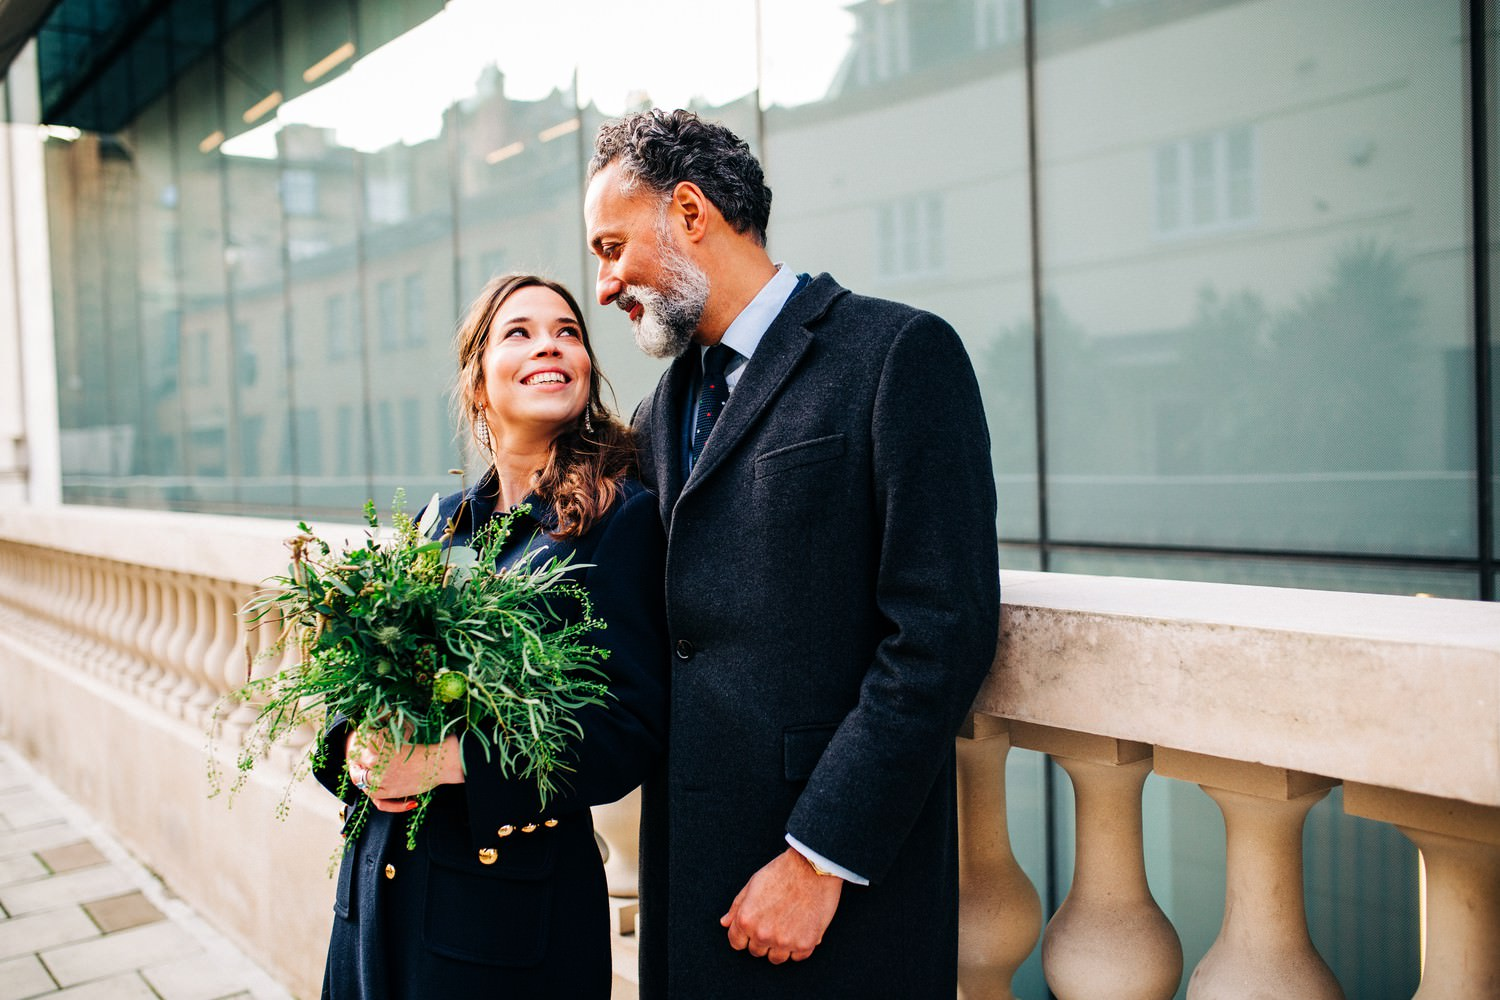 Relaxed Wedding Photography at Jones and Co, London